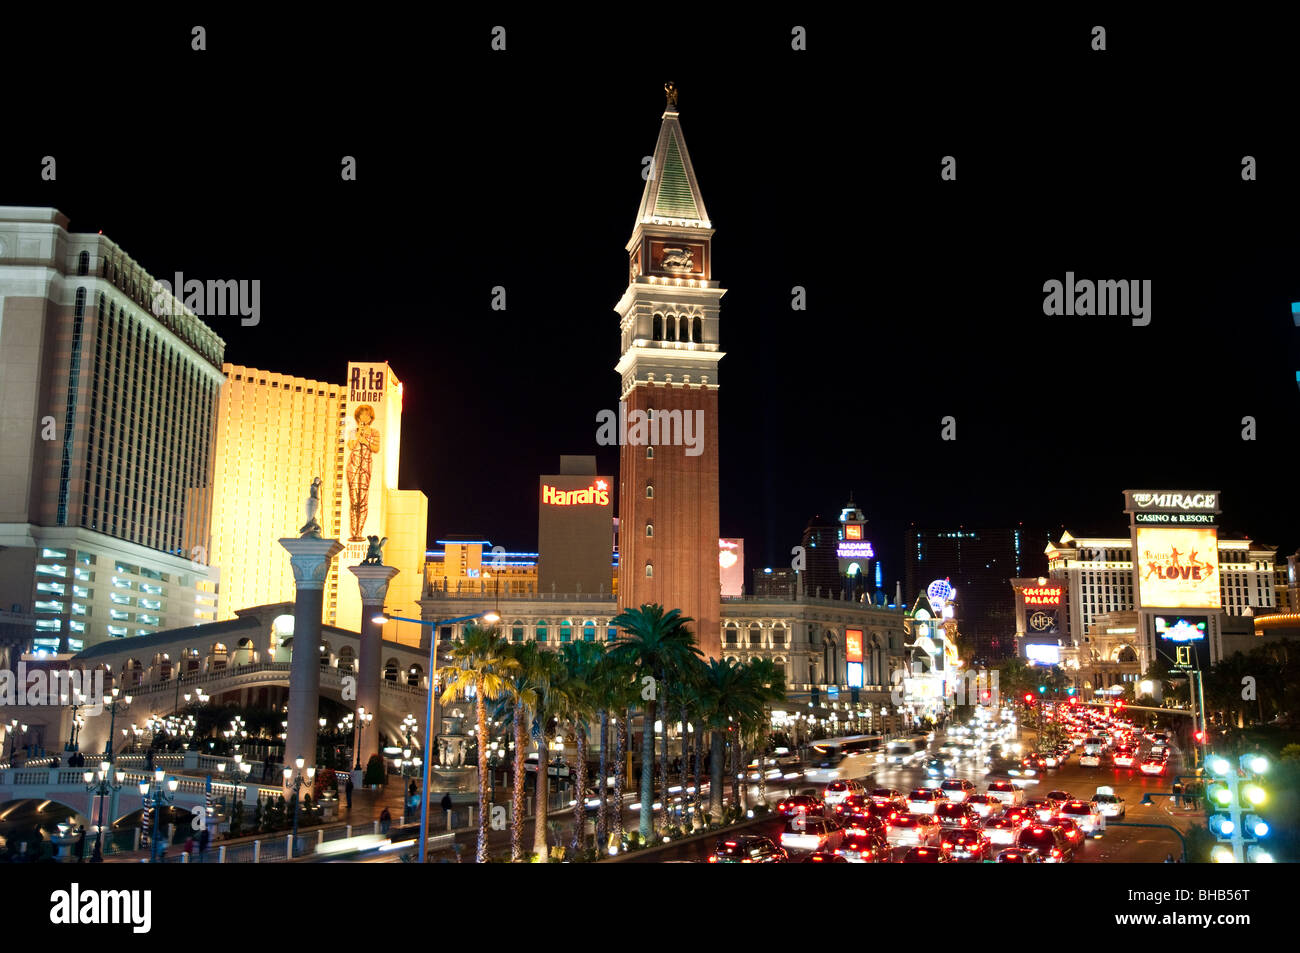 Bell tower copy of the Campanile di San Marco, Venetian Hotel & Casino, Las Vegas, Nevada, USA - Stock Image